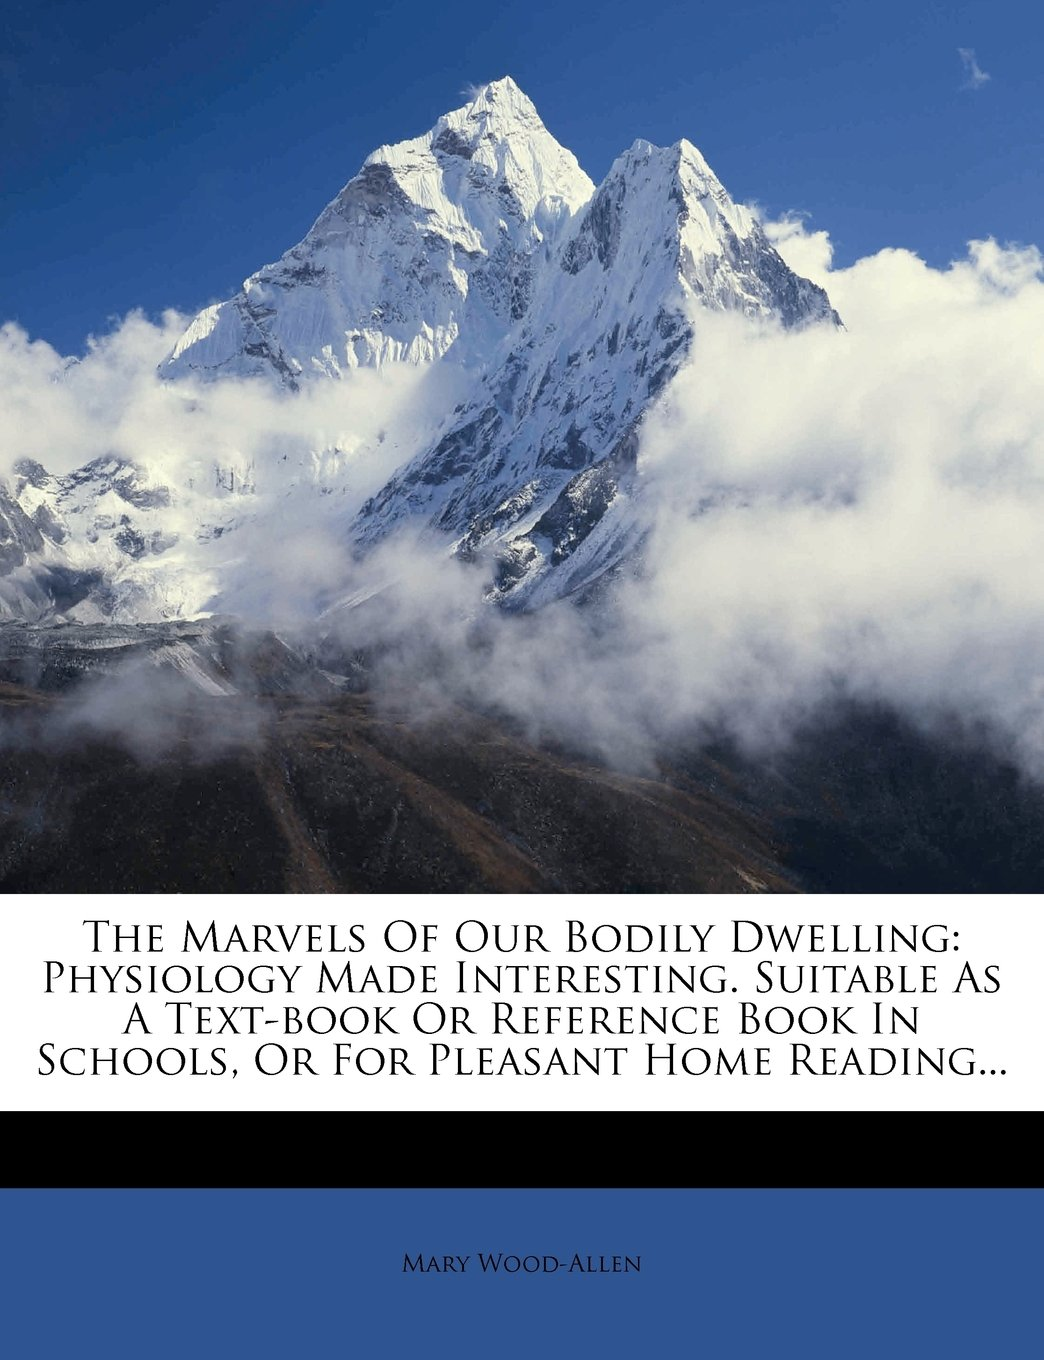 Download The Marvels Of Our Bodily Dwelling: Physiology Made Interesting. Suitable As A Text-book Or Reference Book In Schools, Or For Pleasant Home Reading... PDF